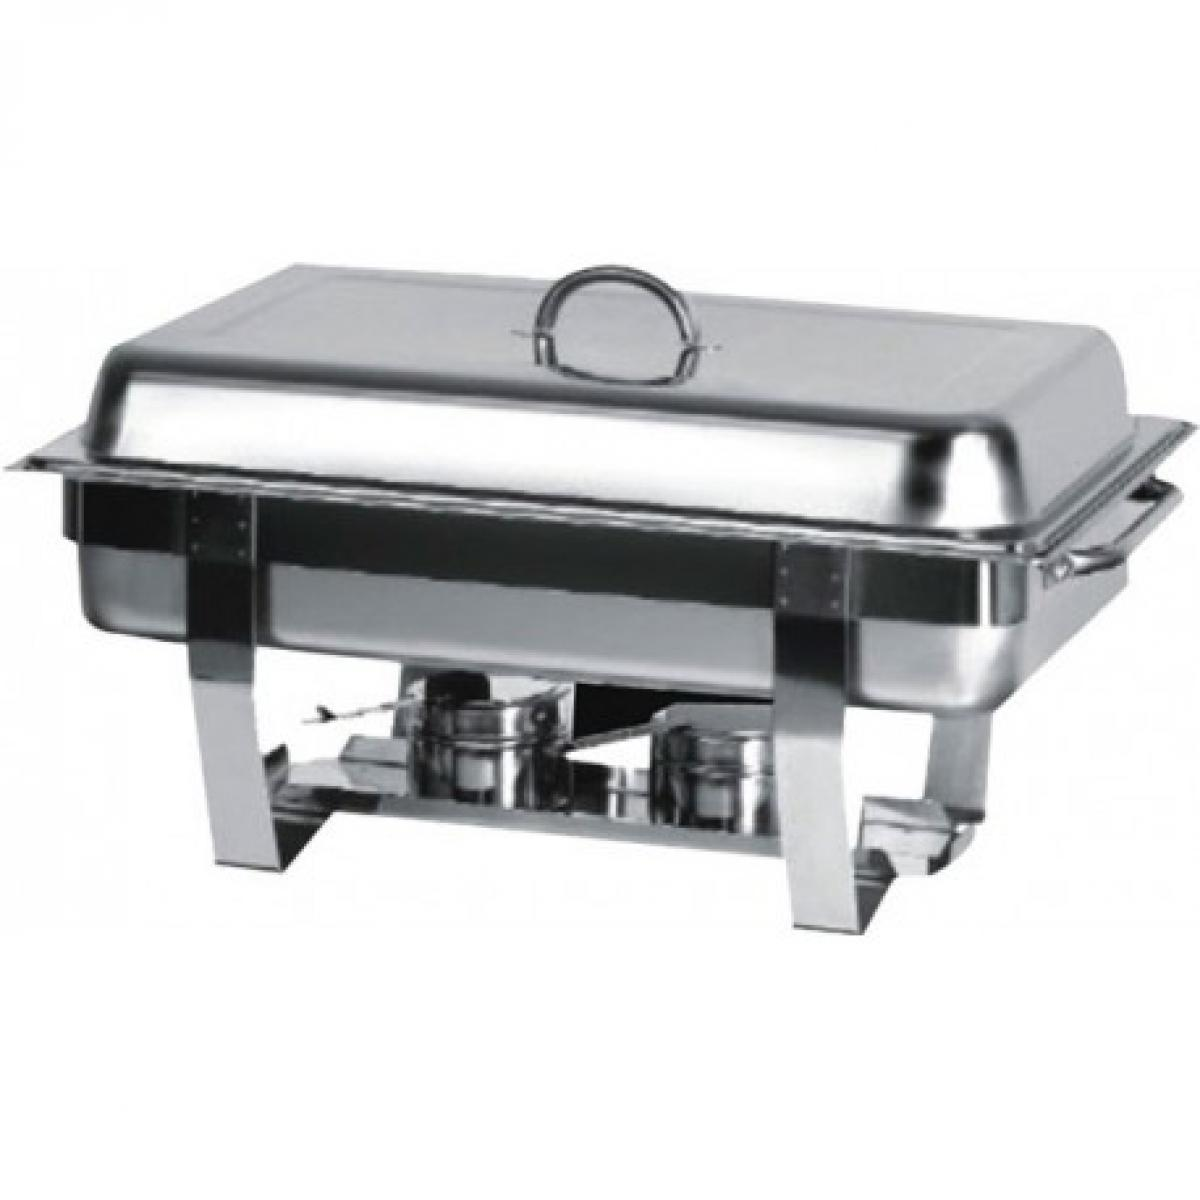 Atosa Chafing Dish avec Couvercle et Pieds en Inox GN 1/1 - Atosa -